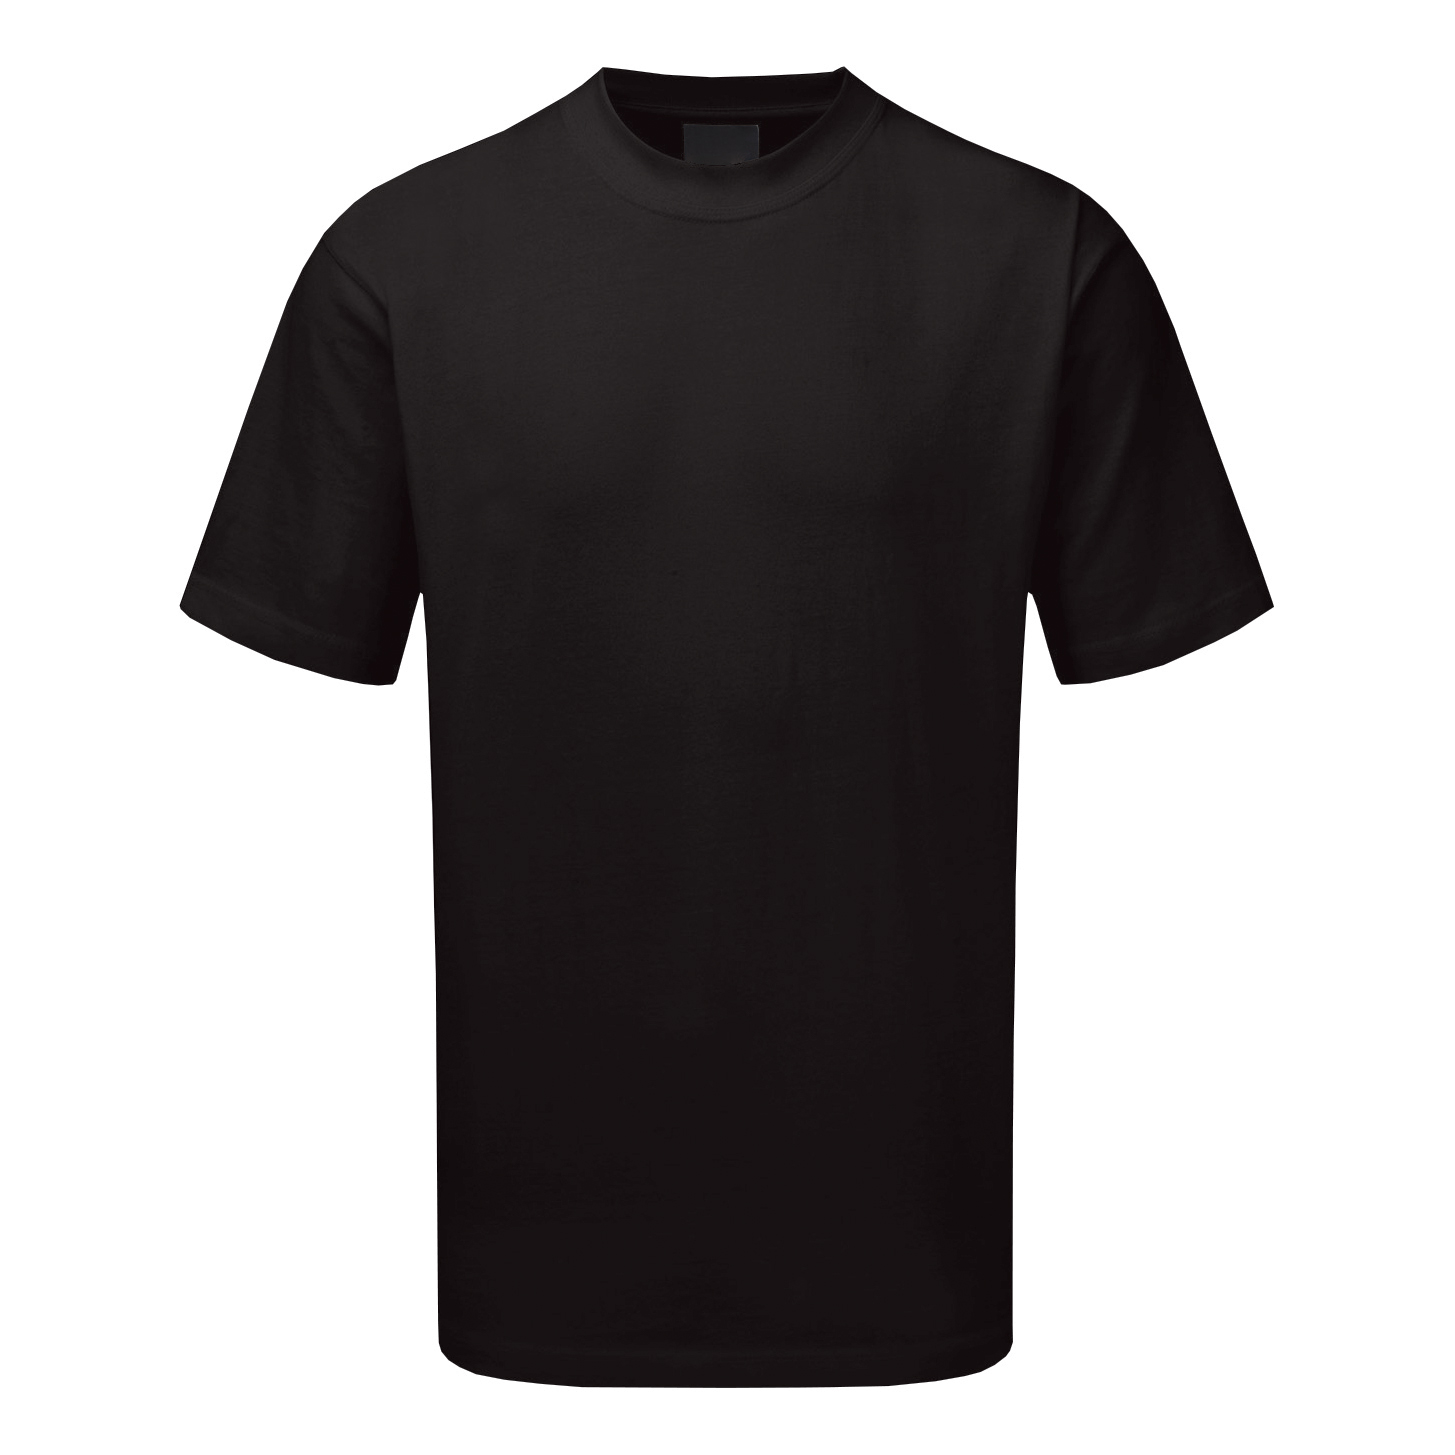 Premium T-Shirt Polycotton Triple Stitched XL Black Ref CLCTSHWBLXL *Up to 3 Day Leadtime*